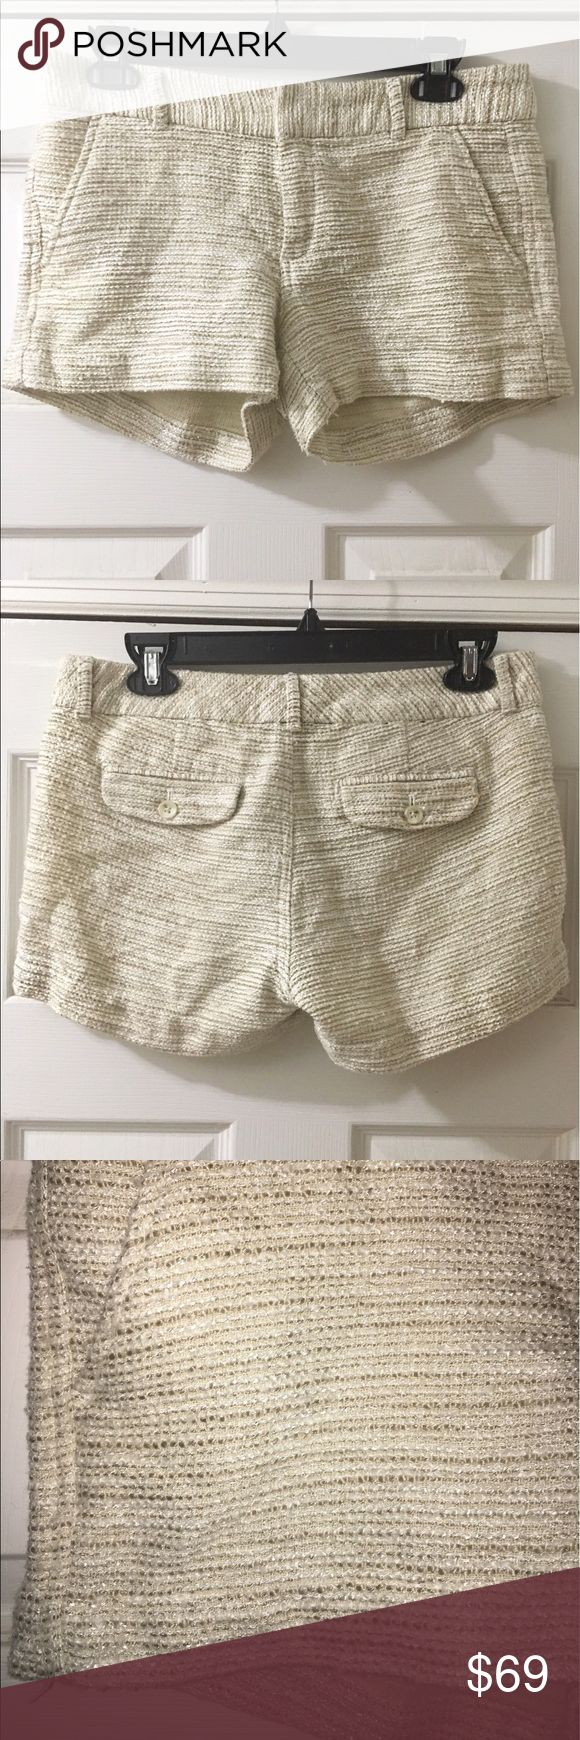 Banana Republic Gold & Cream Tweed Shorts size 4 Banana Republic  Tweed Gold & Cream Shorts Useful front pockets Super cute and comfortable  Size: 4 Banana Republic Shorts